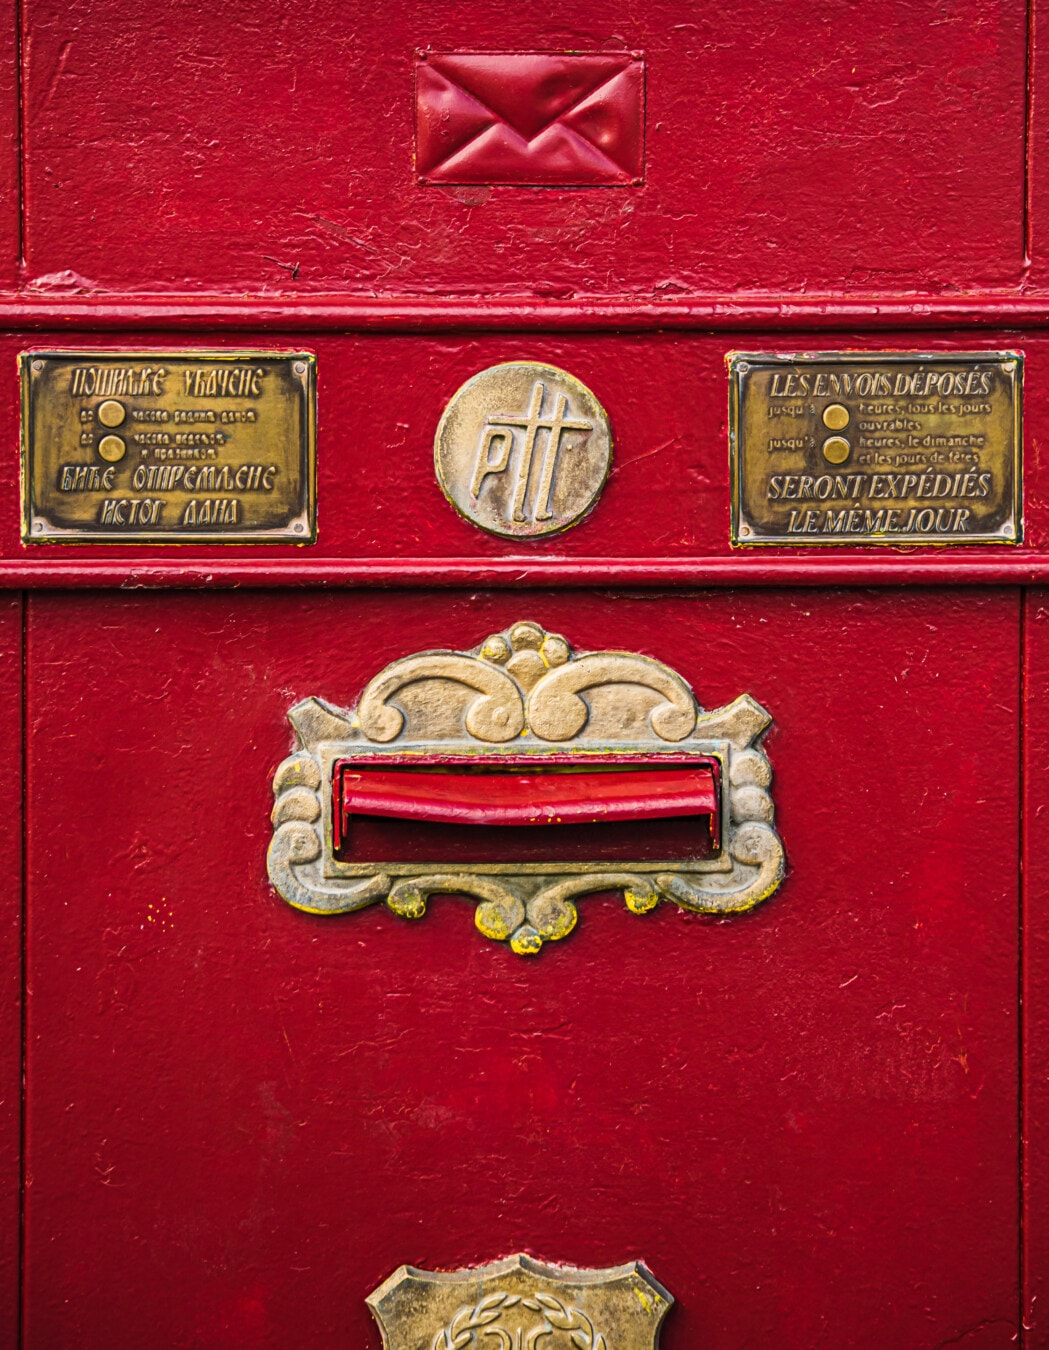 vintage, history, mailbox, cast iron, dark red, mail, container, old, box, retro